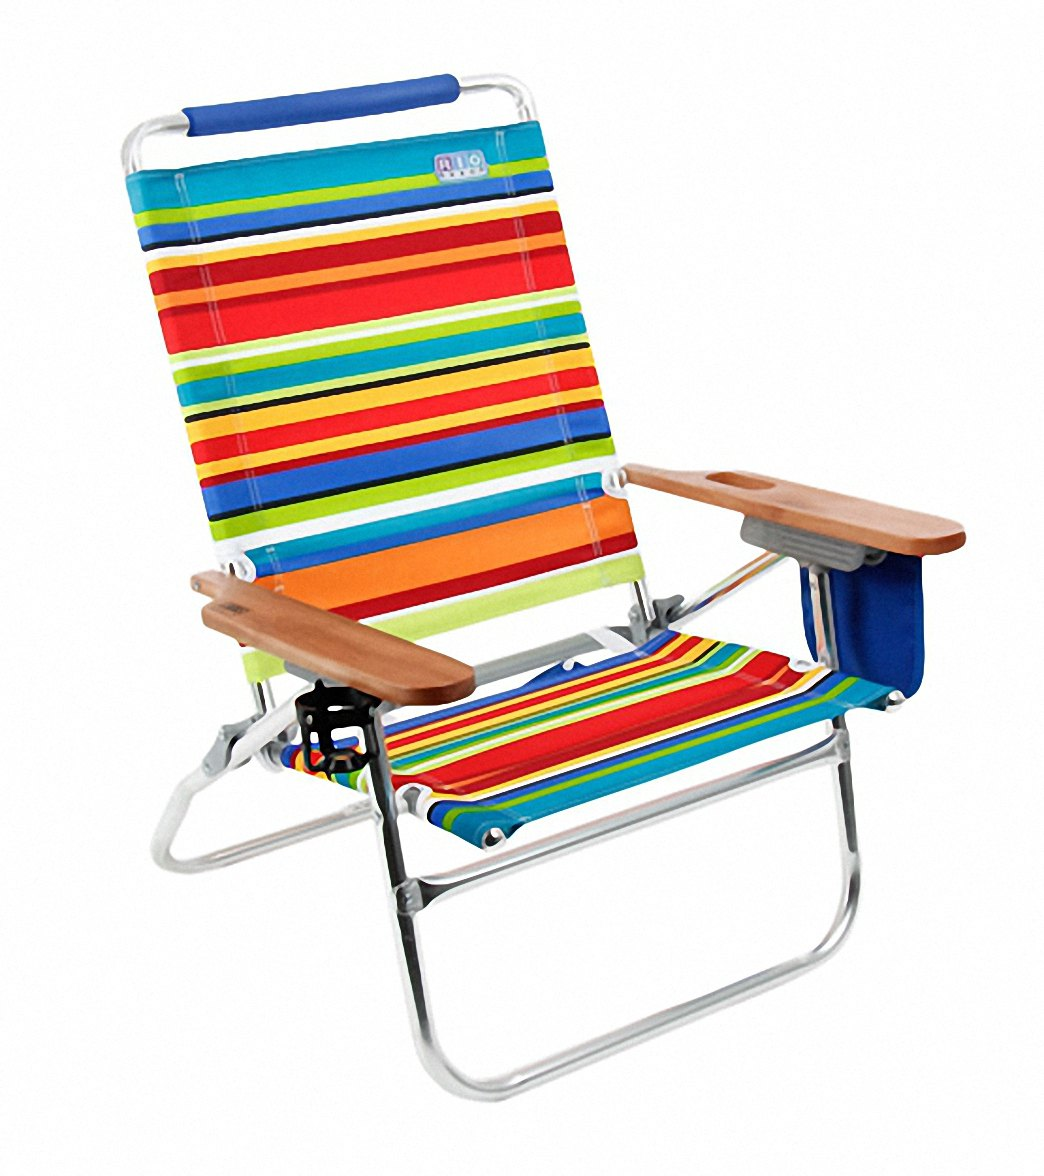 product rio master extra rioextrawidebackpackbeachchair beach hayneedle cfm chairs backpack wide chair